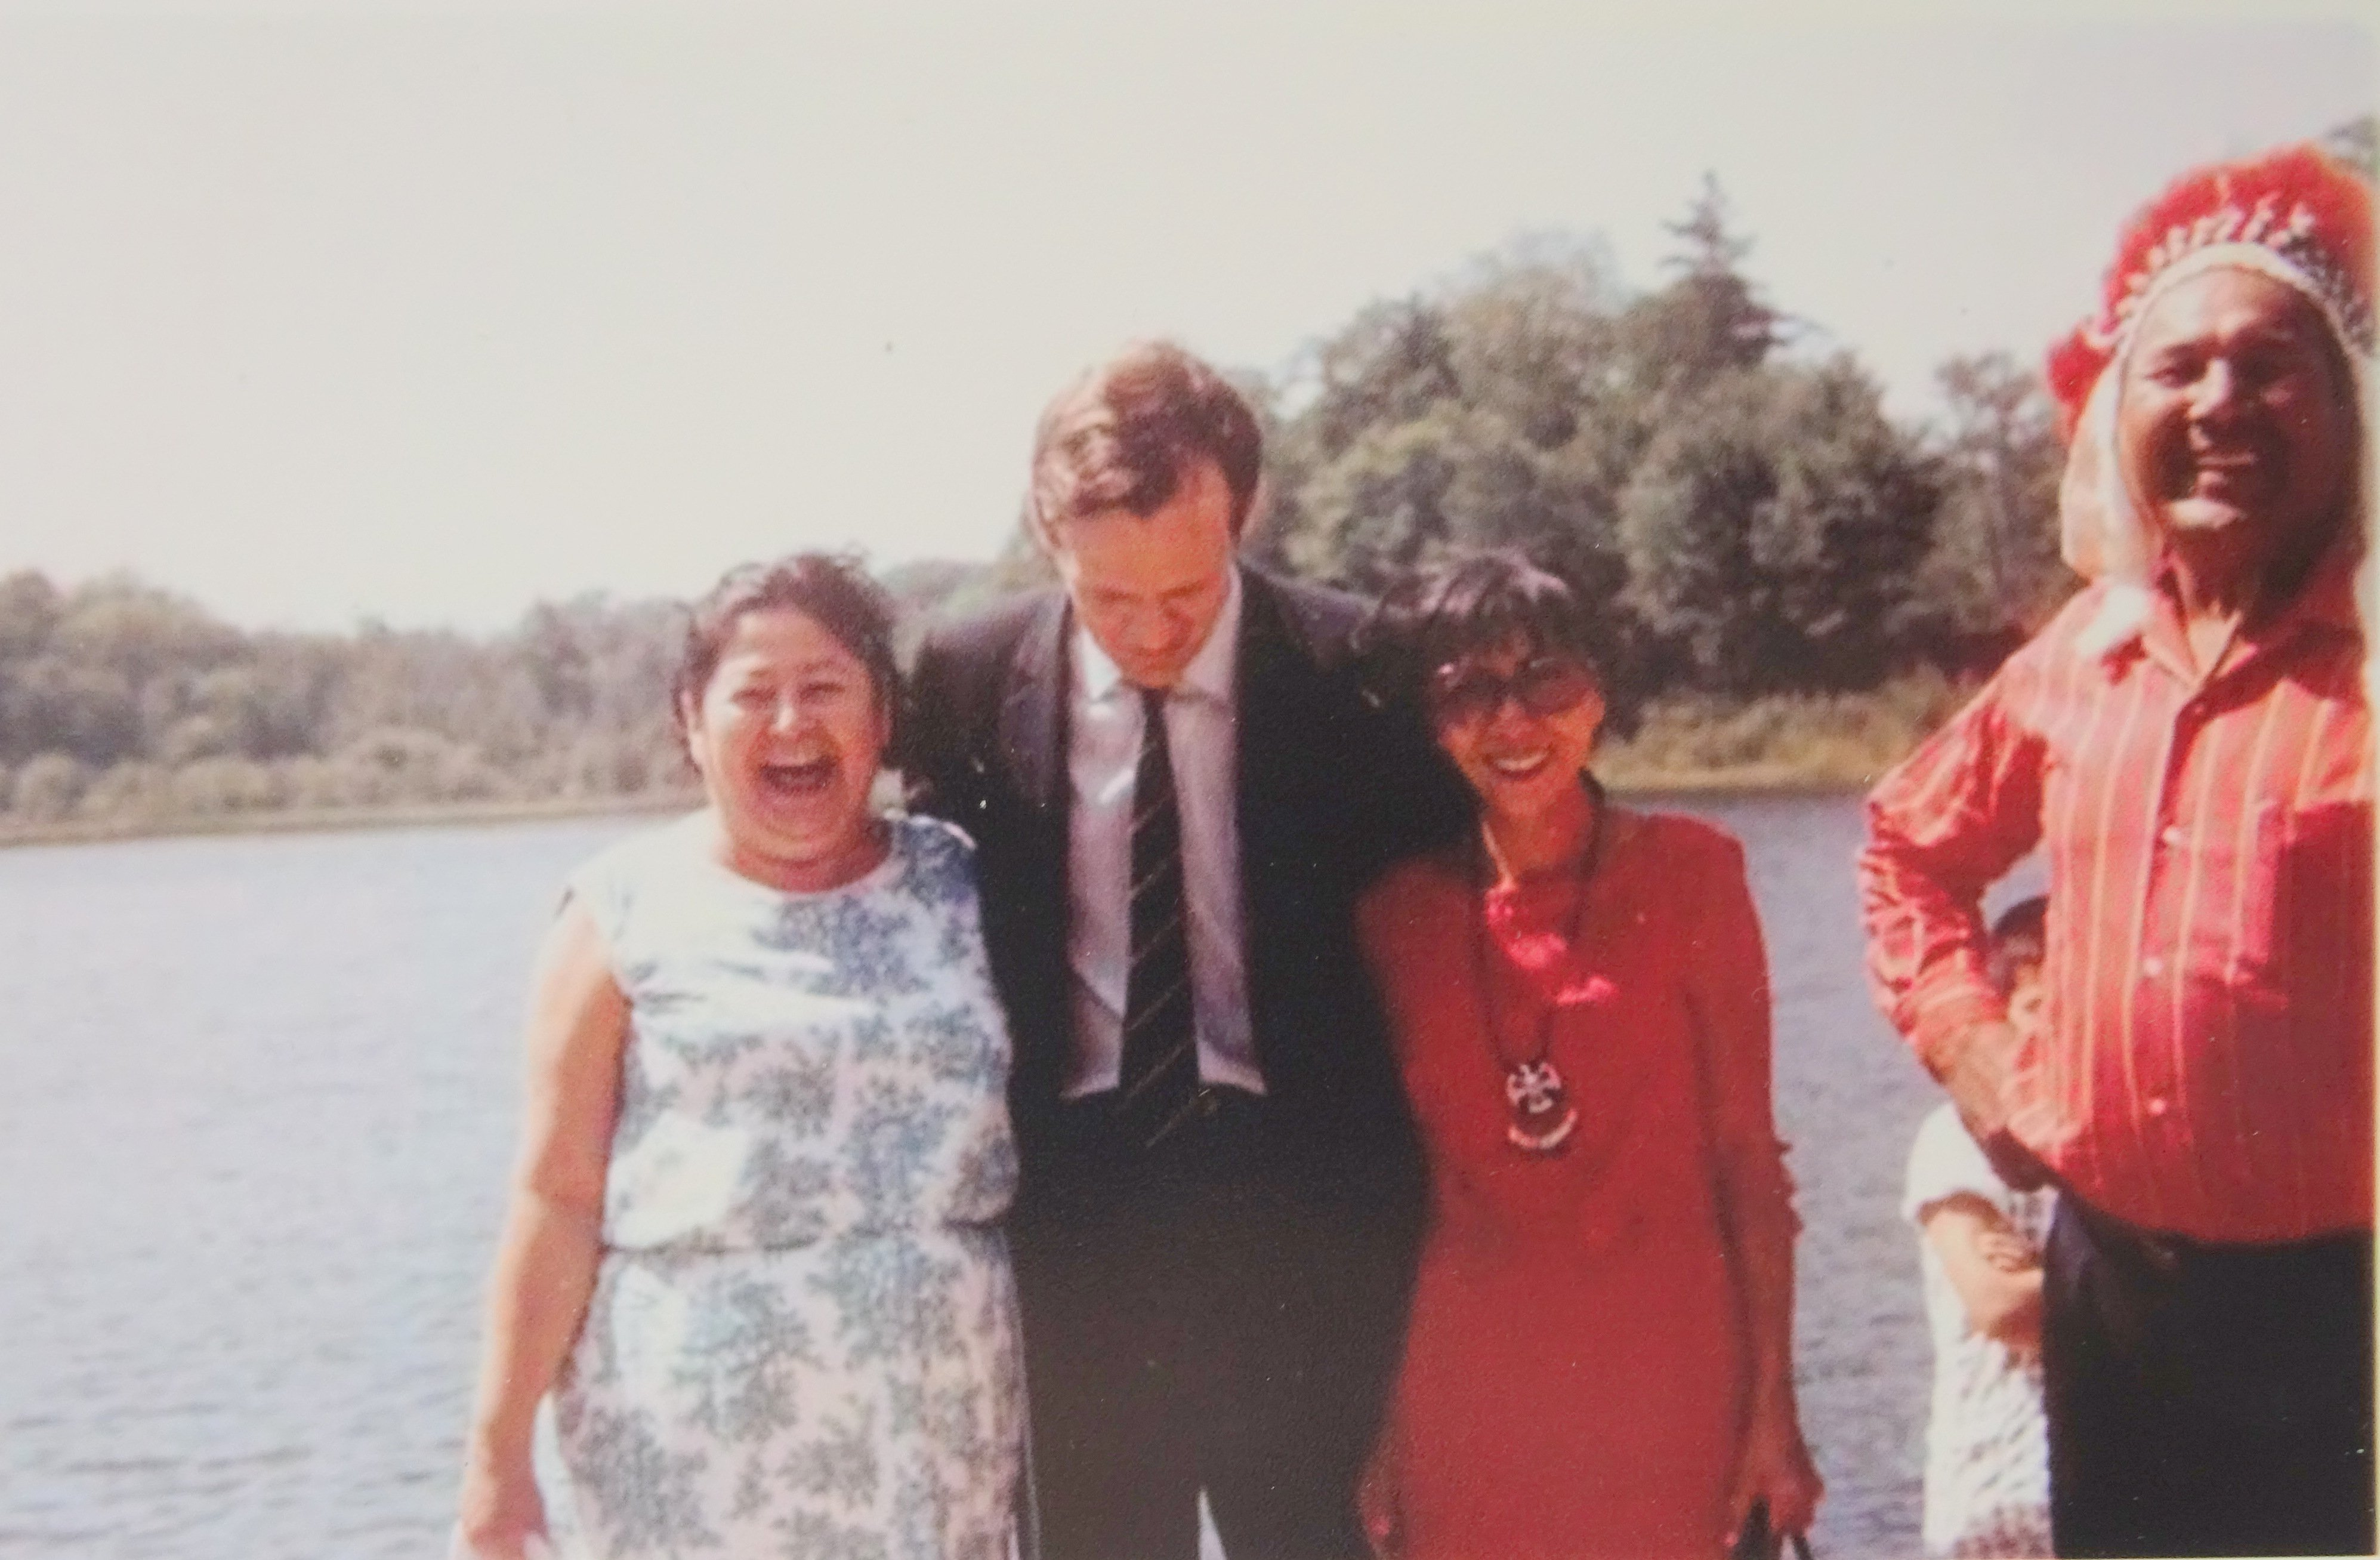 Hettie Sylvester, Jean Chretien (Minister of Indian Affairs and Northern Development), Irene and Chief of Christian Island, circa 1969